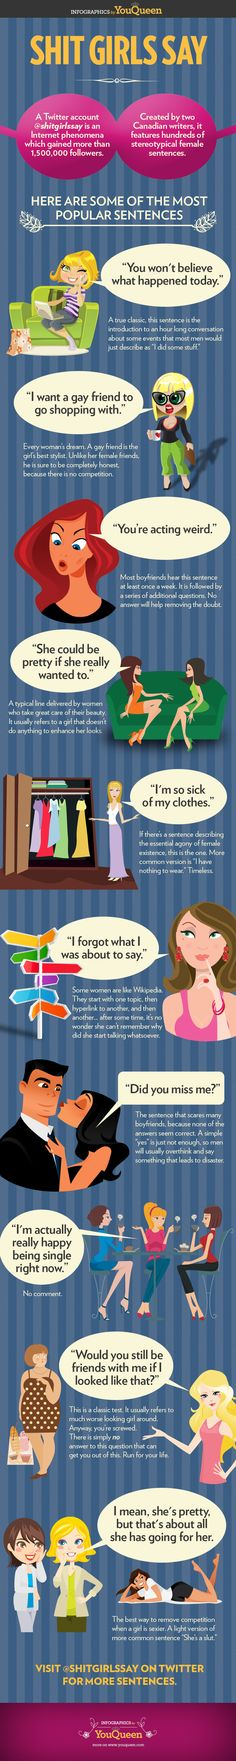 Shit Girls Say (INFOGRAPHIC) - most popular stereotypical female sentences. Inspired by @ShitGirlsSay Twitter account, made by YouQueen magazine. #Infographic